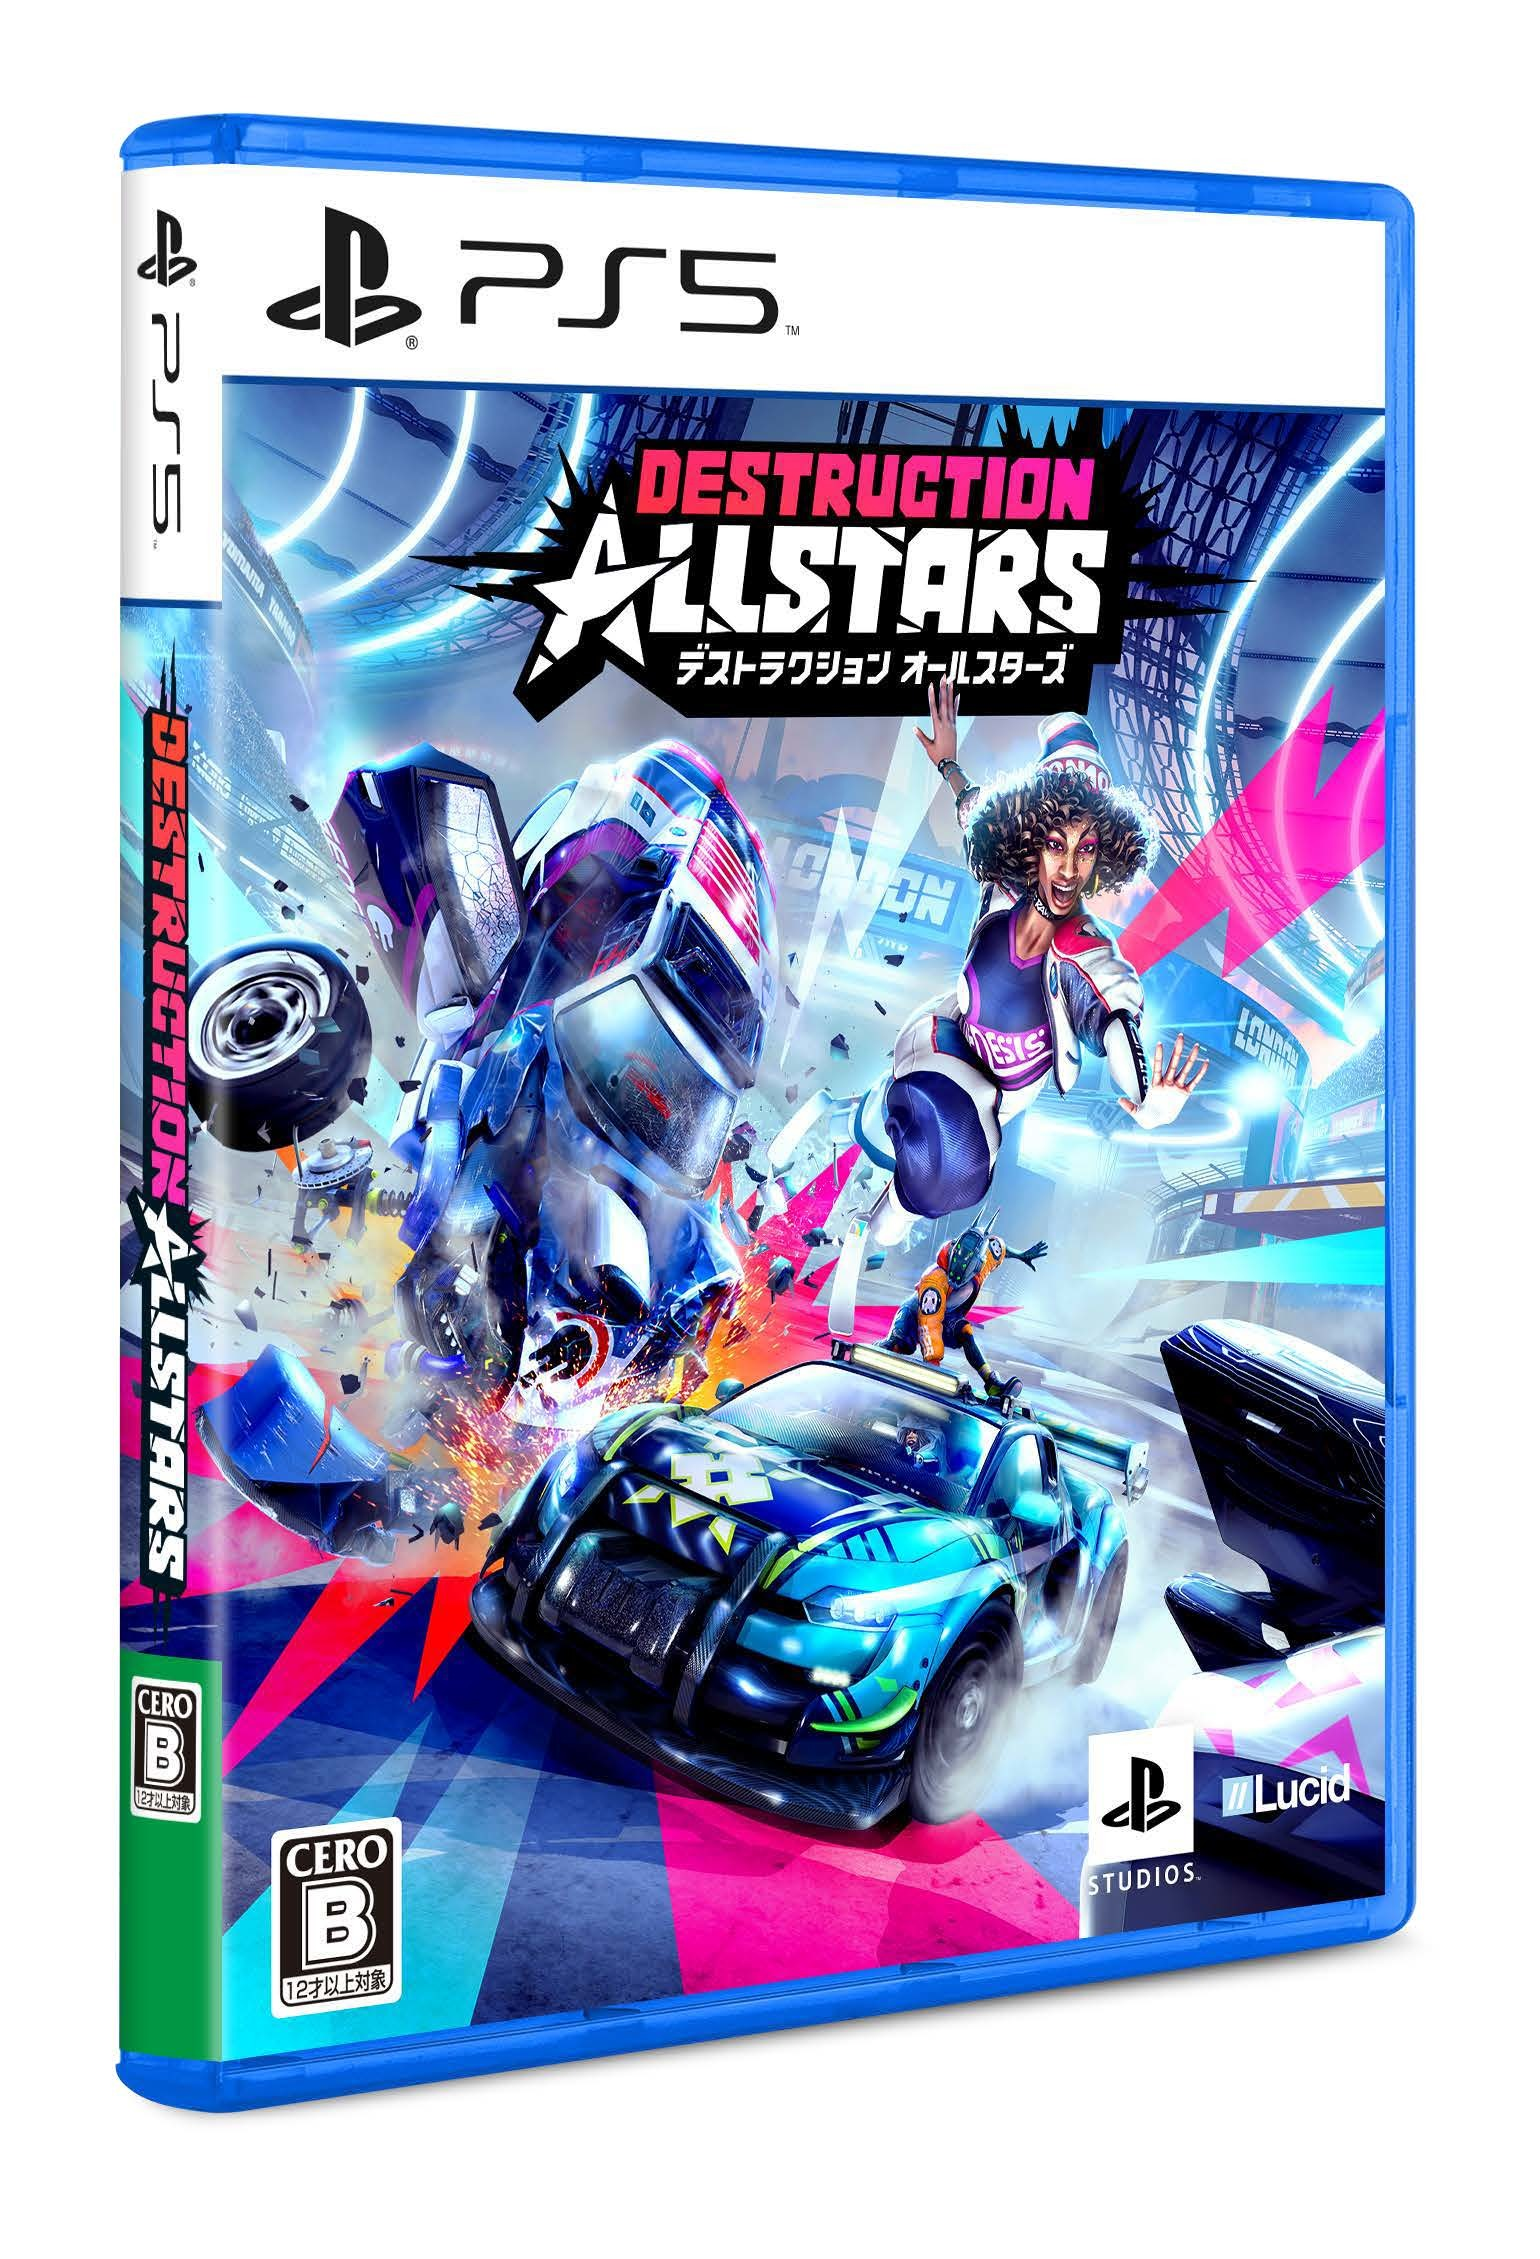 『Destruction AllStars』パッケージ (C)Sony Interactive Entertainment Europe Ltd. Developed by Lucid Games Limited.